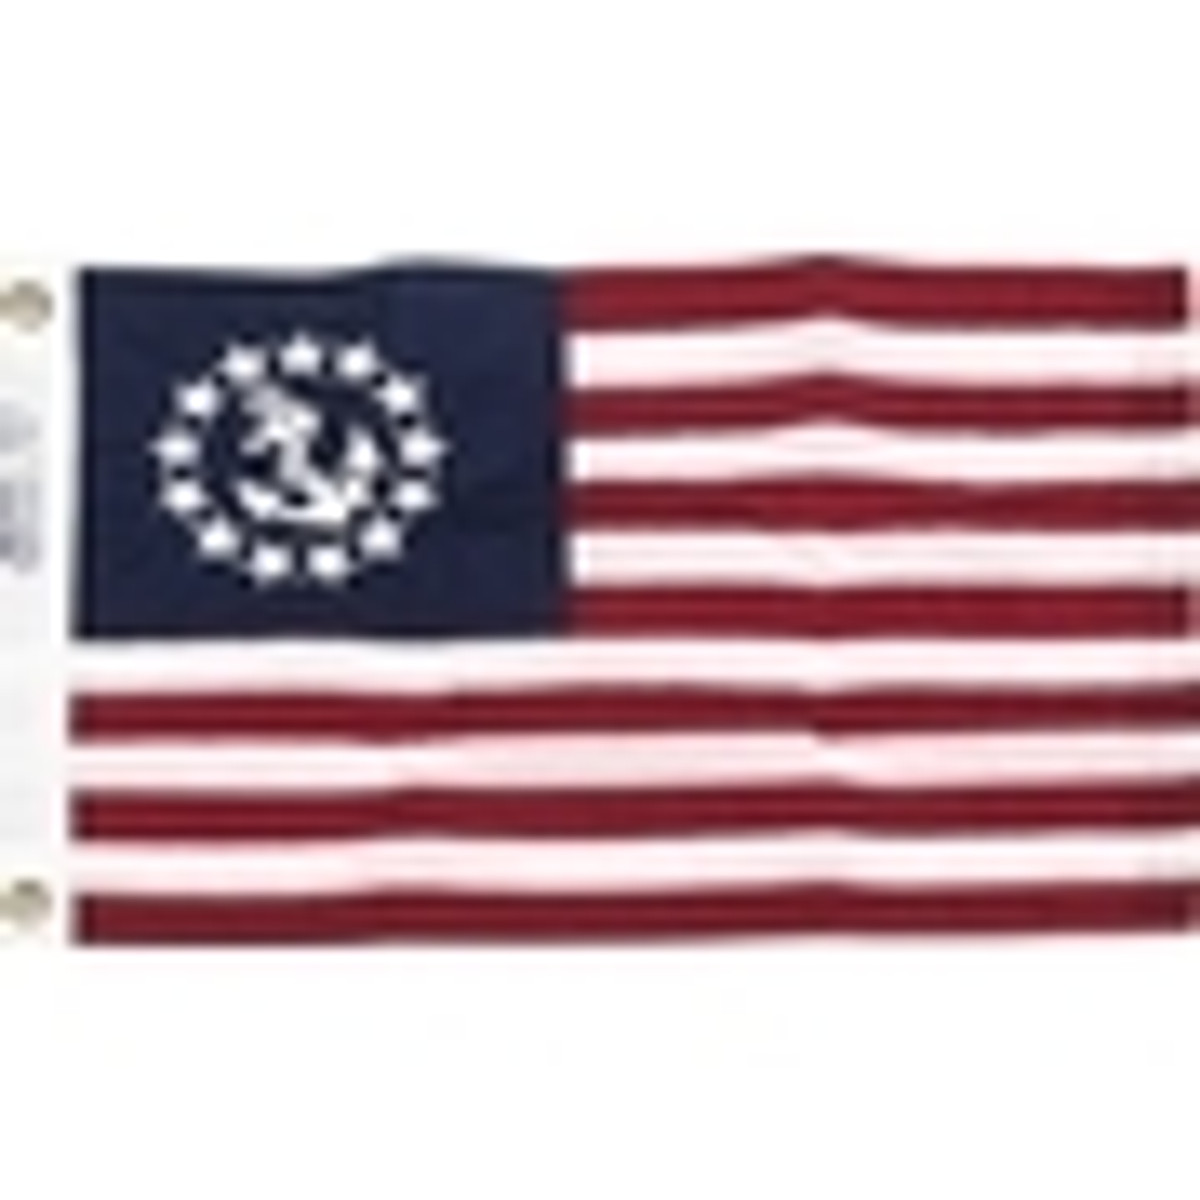 U.S. Yacht Flag - Boat Ensign Flag